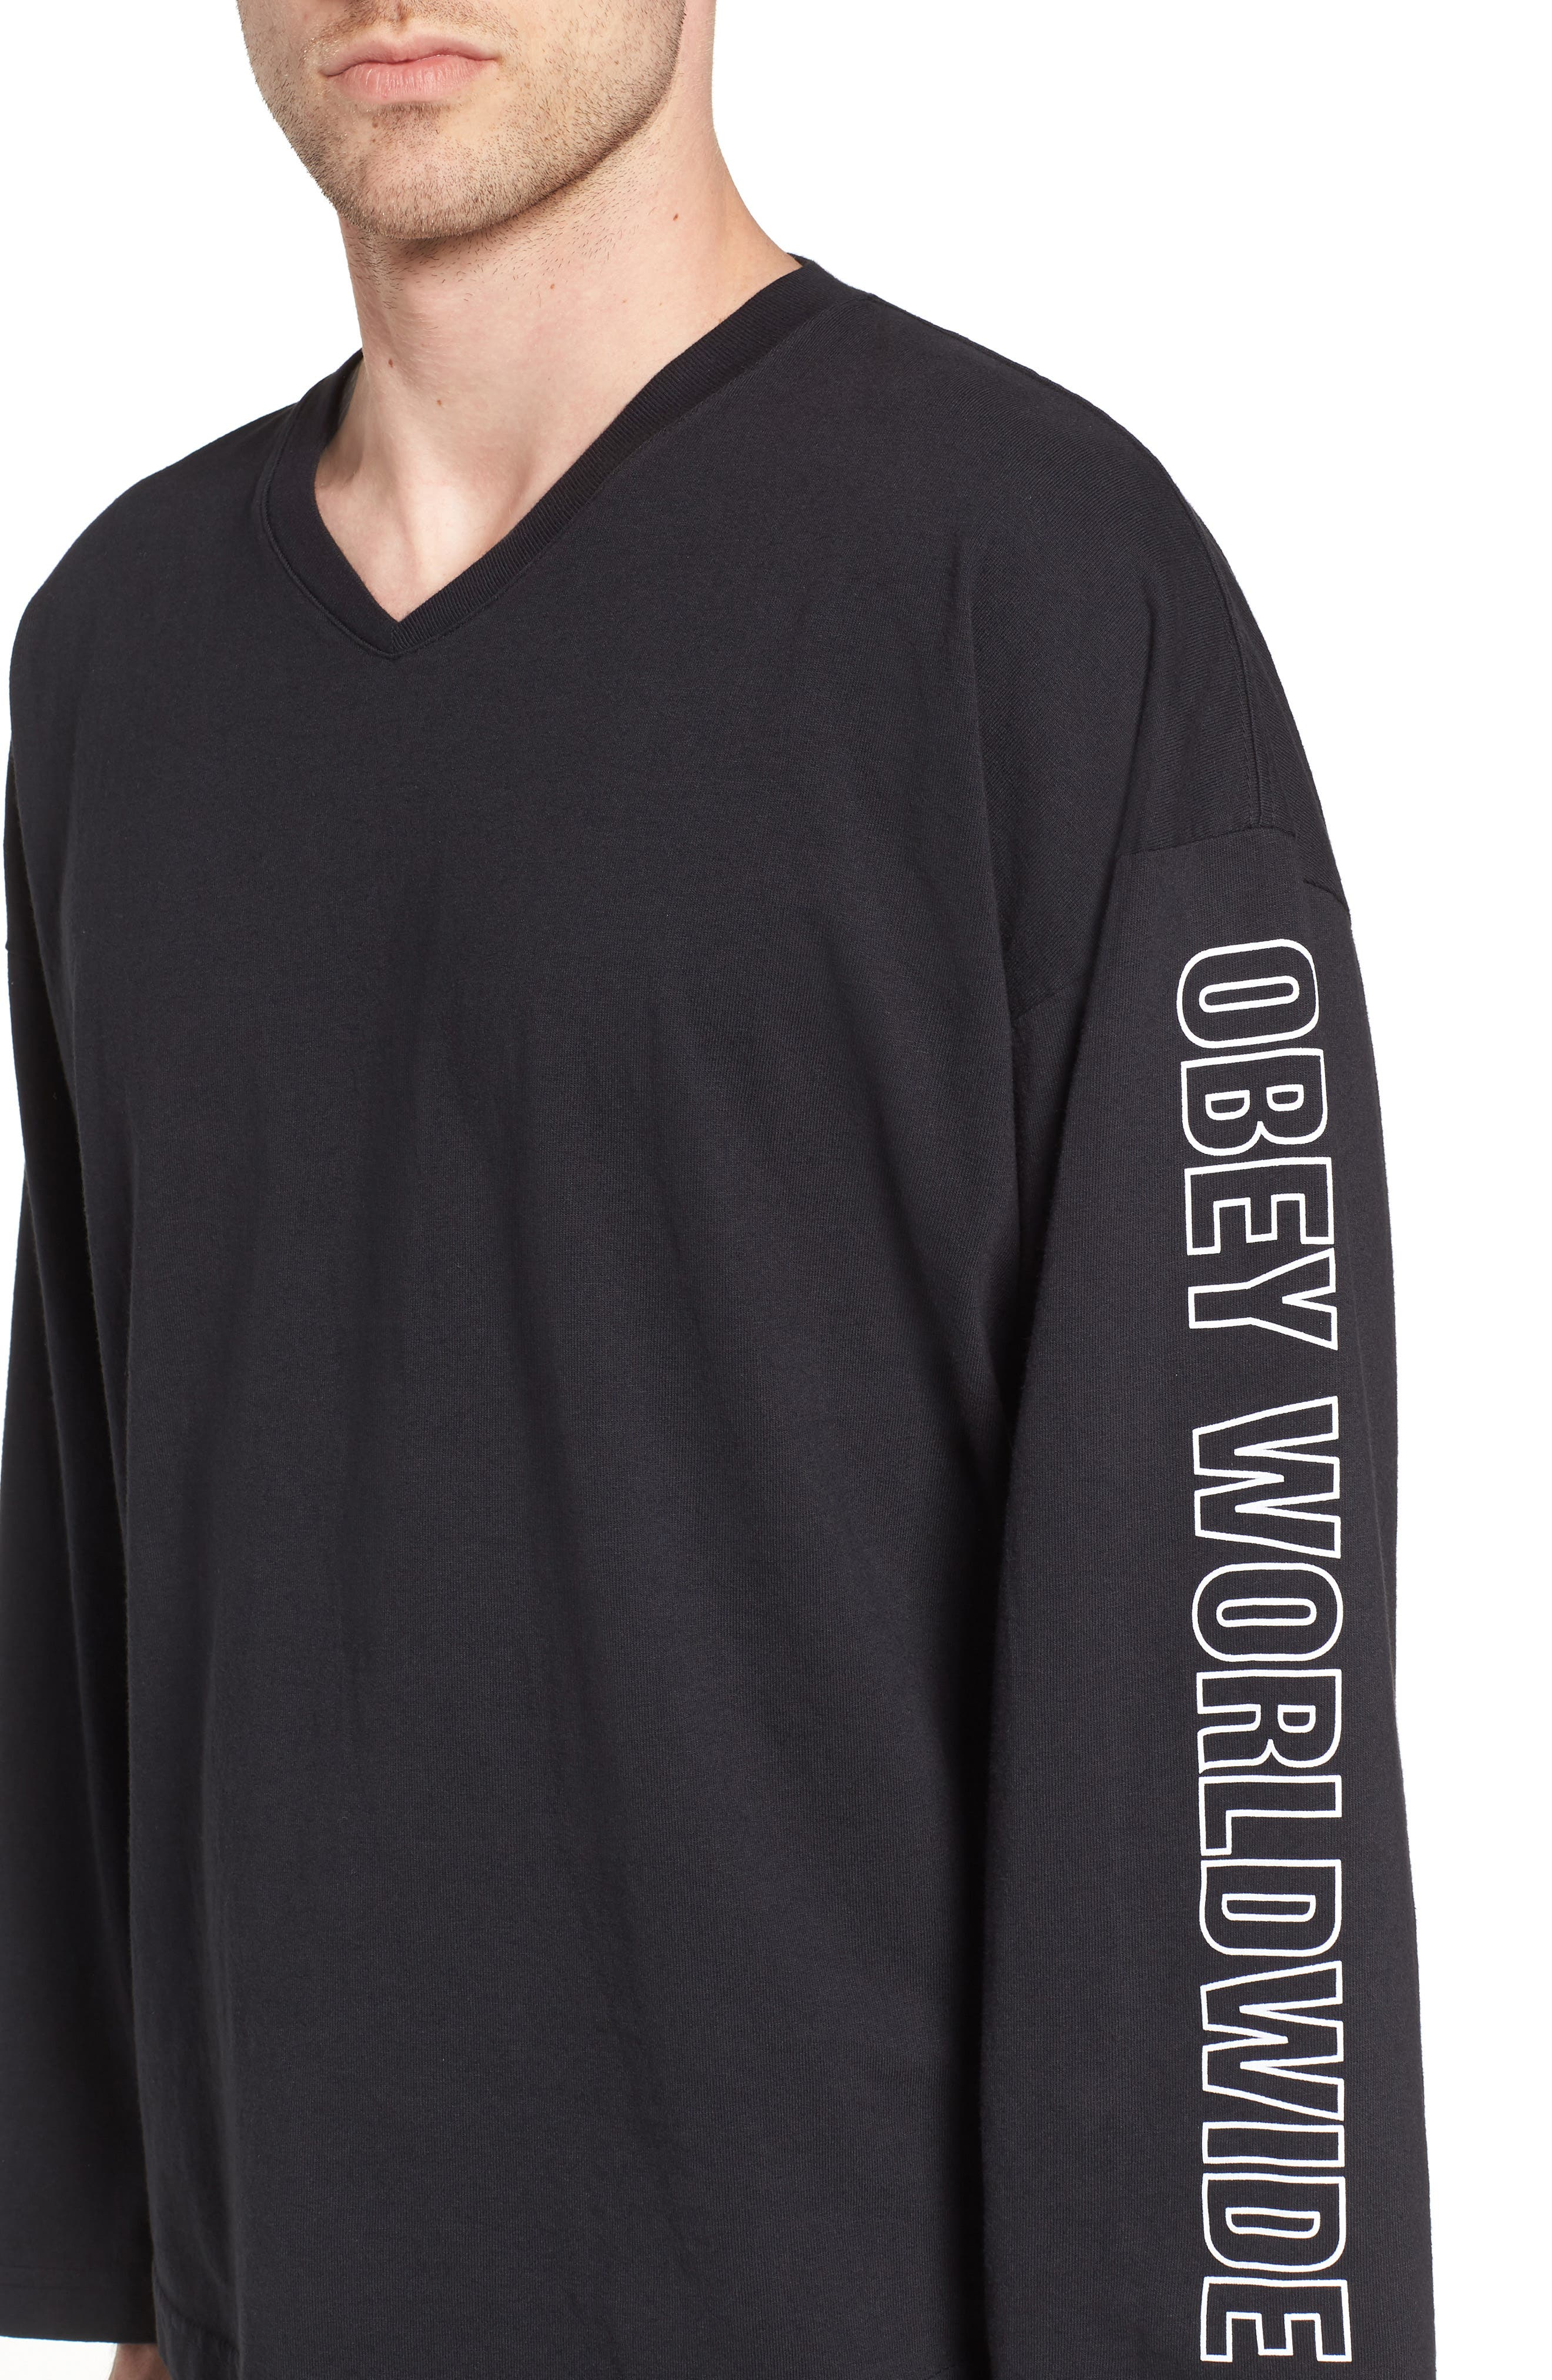 OBEY,                             Worldwide Outline Logo Hockey Jersey,                             Alternate thumbnail 4, color,                             001